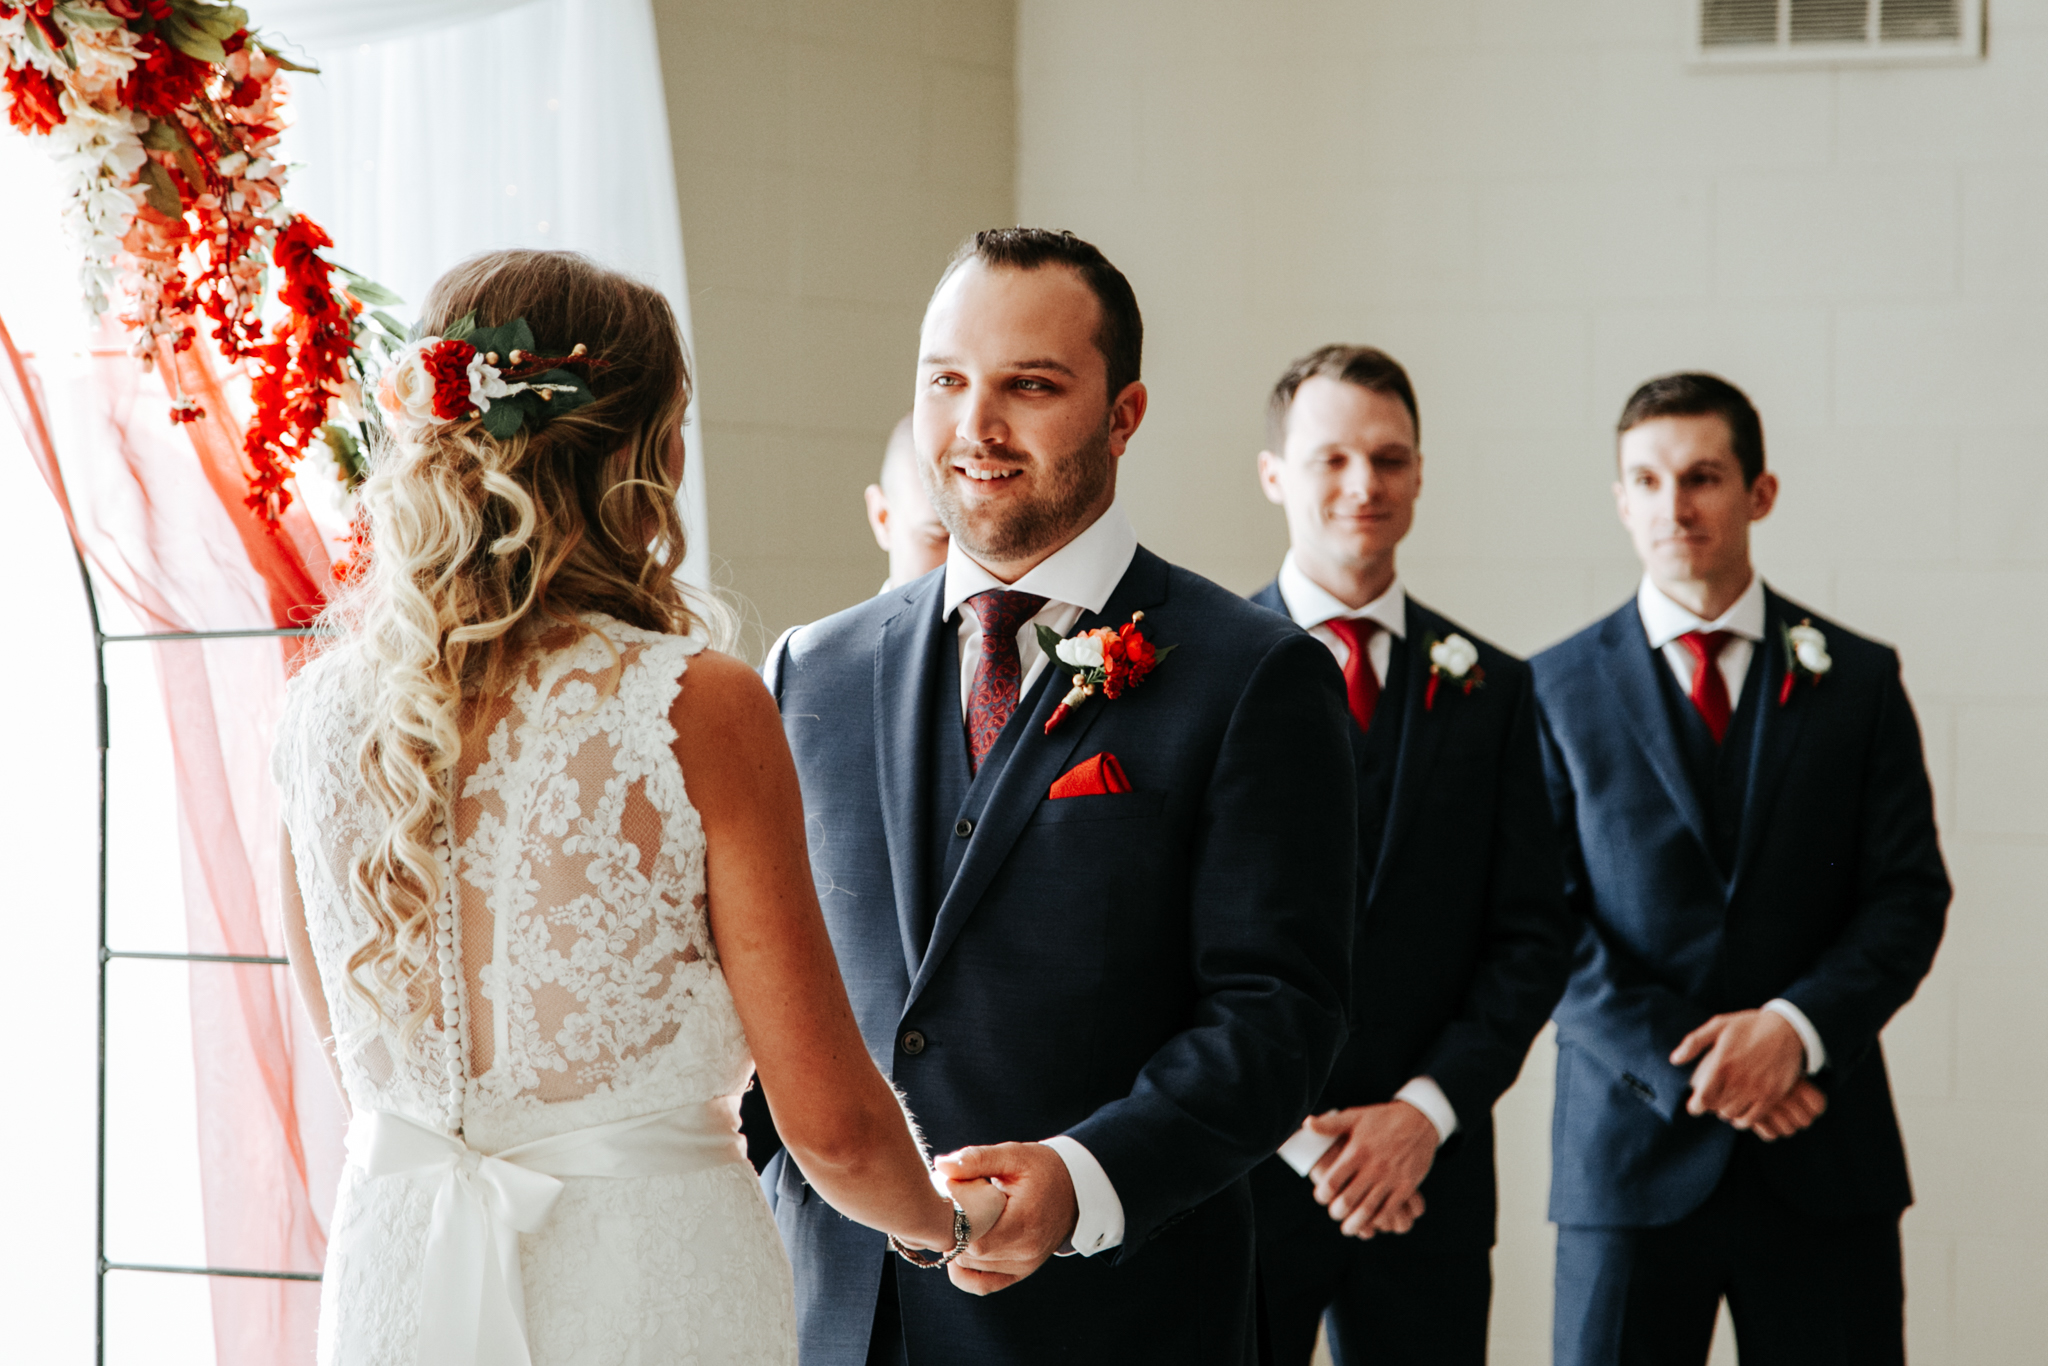 lethbridge-wedding-photography-love-and-be-loved-rocky-mountain-turf-club-ceremony-picture-image-photo-12.jpg